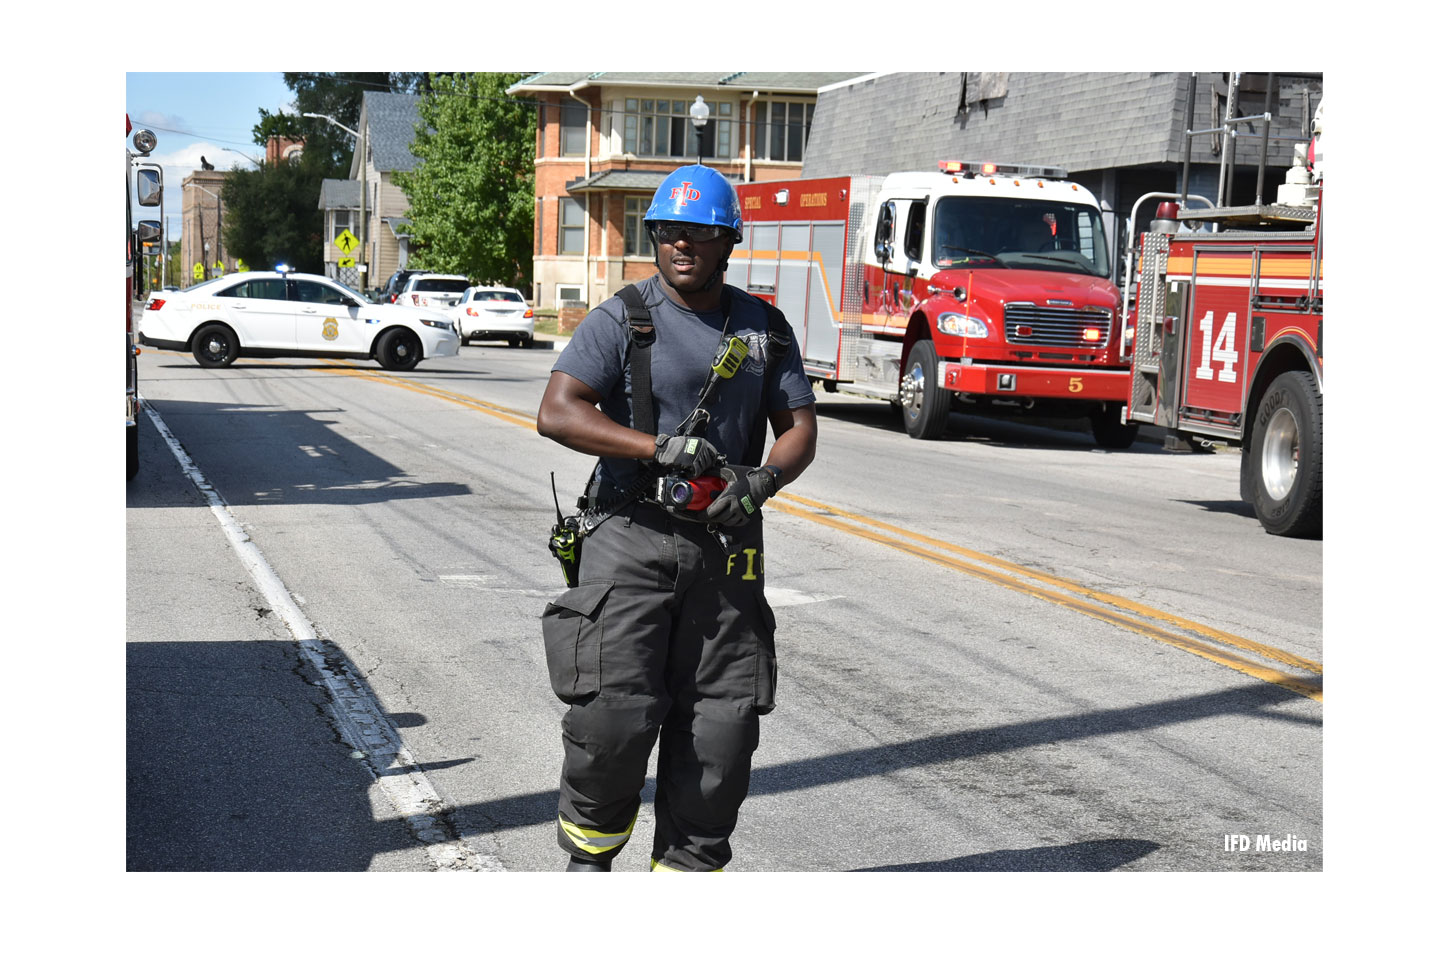 Indianapolis Fire Department responded to the scene of a structural collapse and two-vehicle crash.